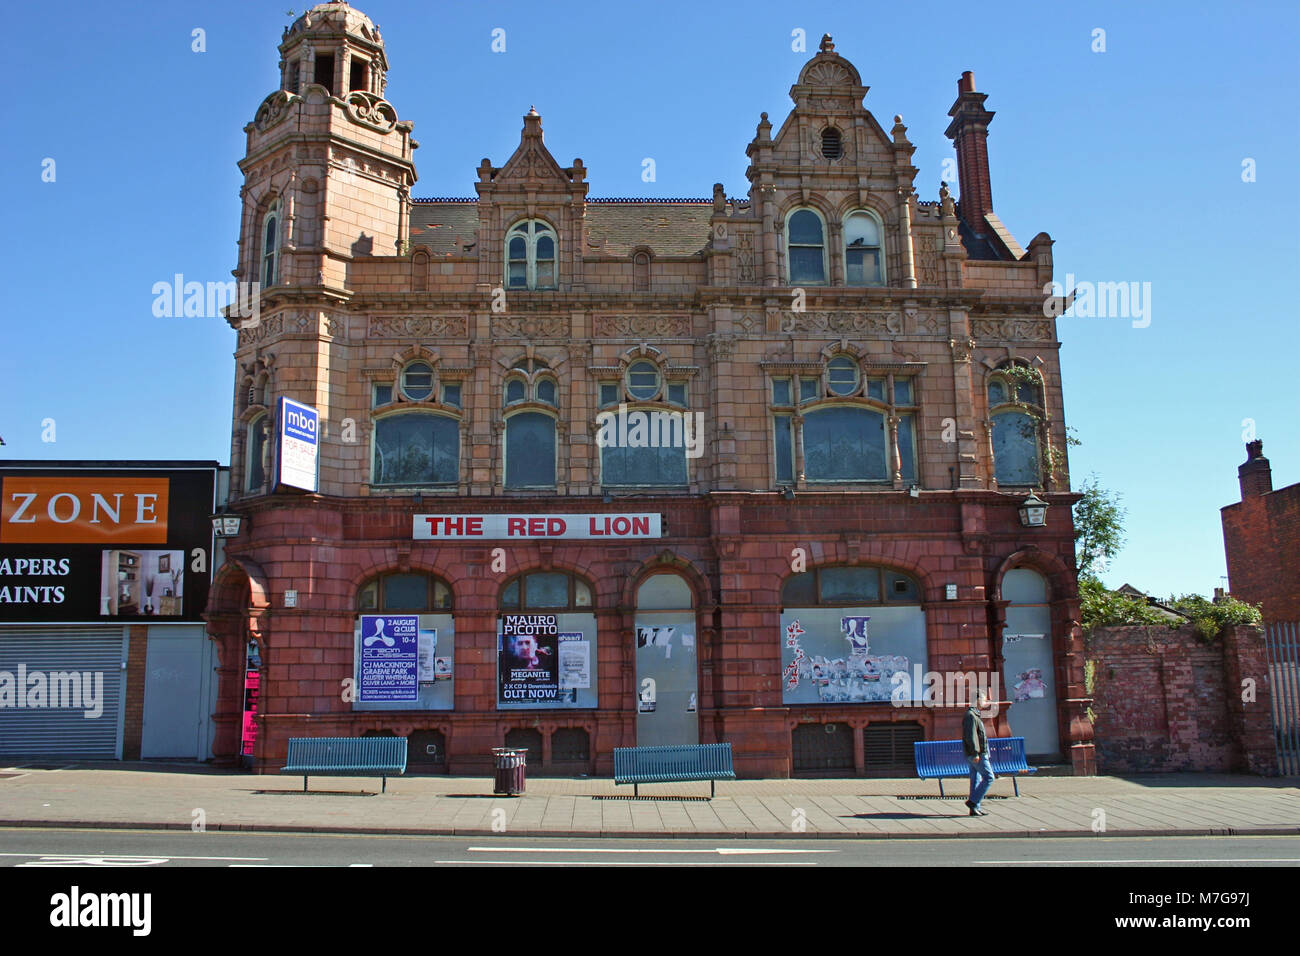 The Red Lion Pub, a listed building at risk, terracotta facade, Soho Road, Birmingham - Stock Image